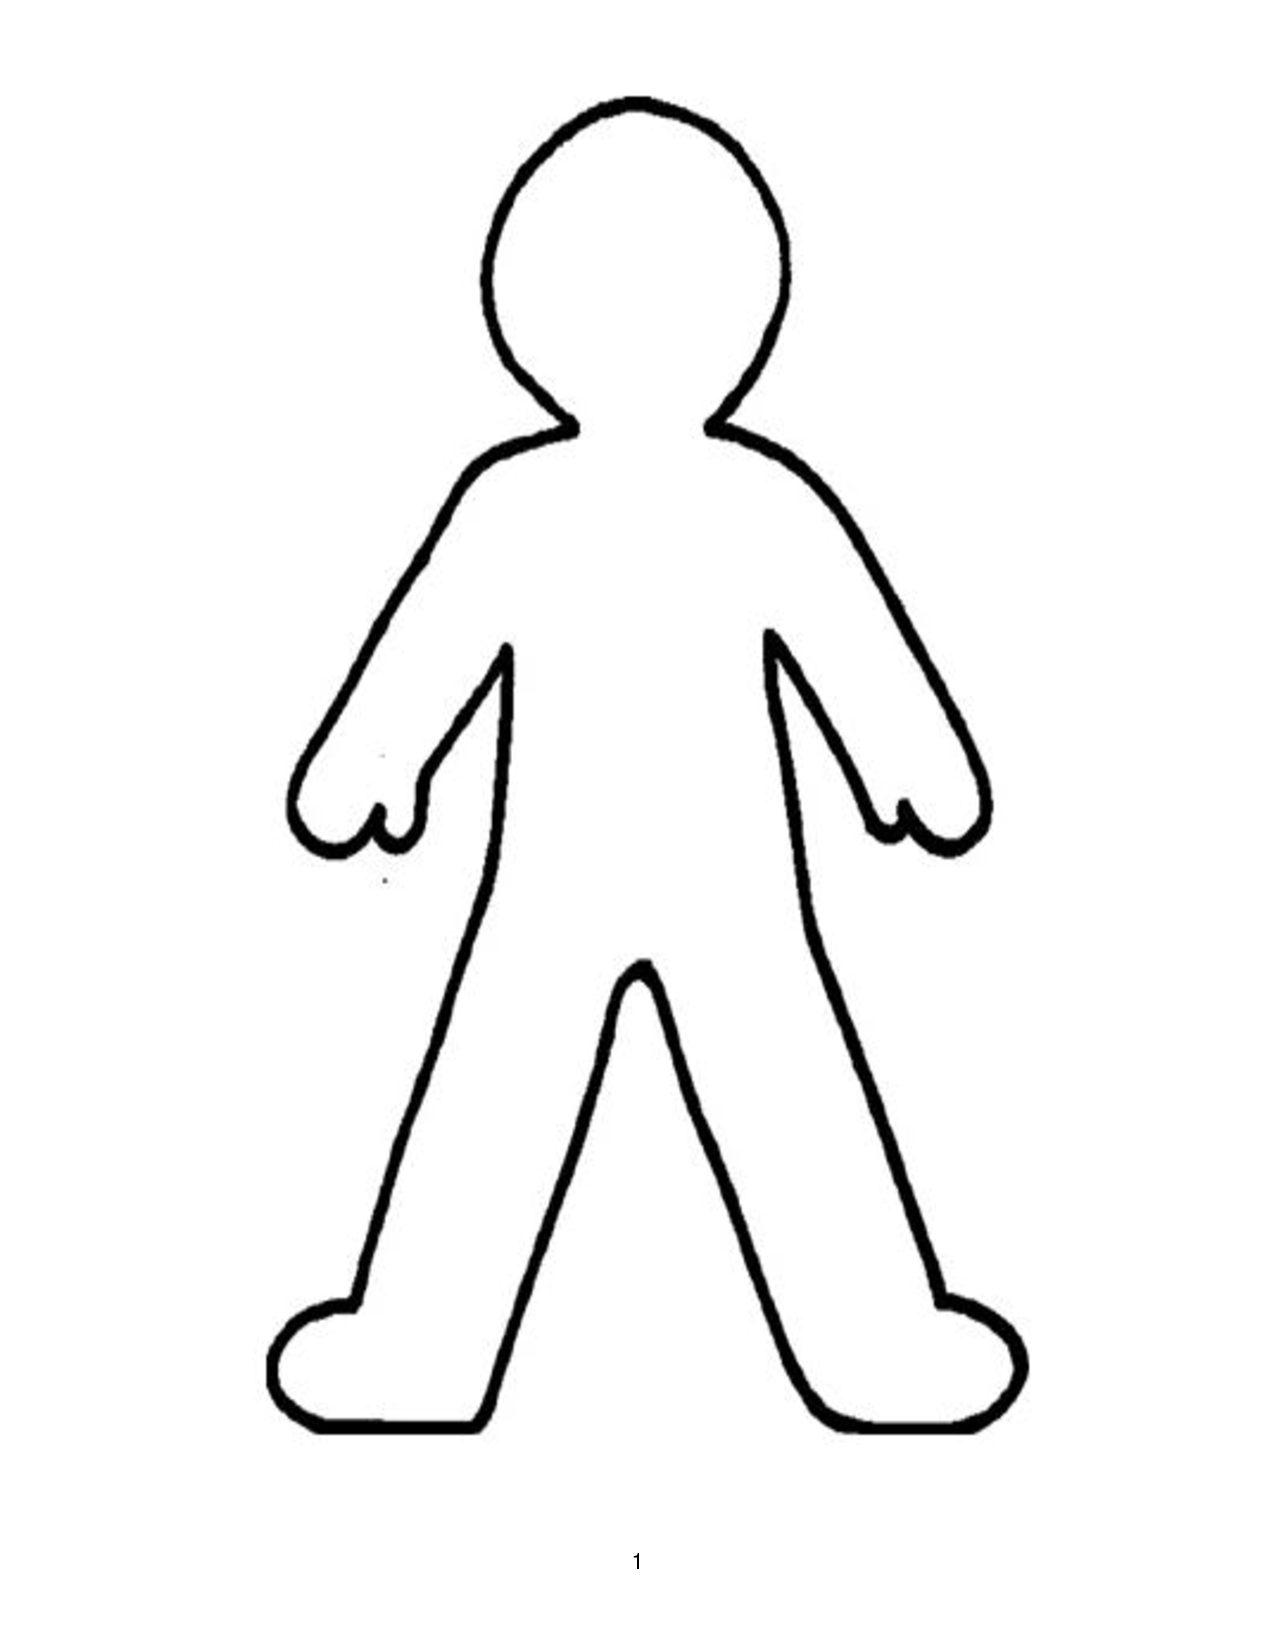 graphic Body clipart. Free outline cliparts download